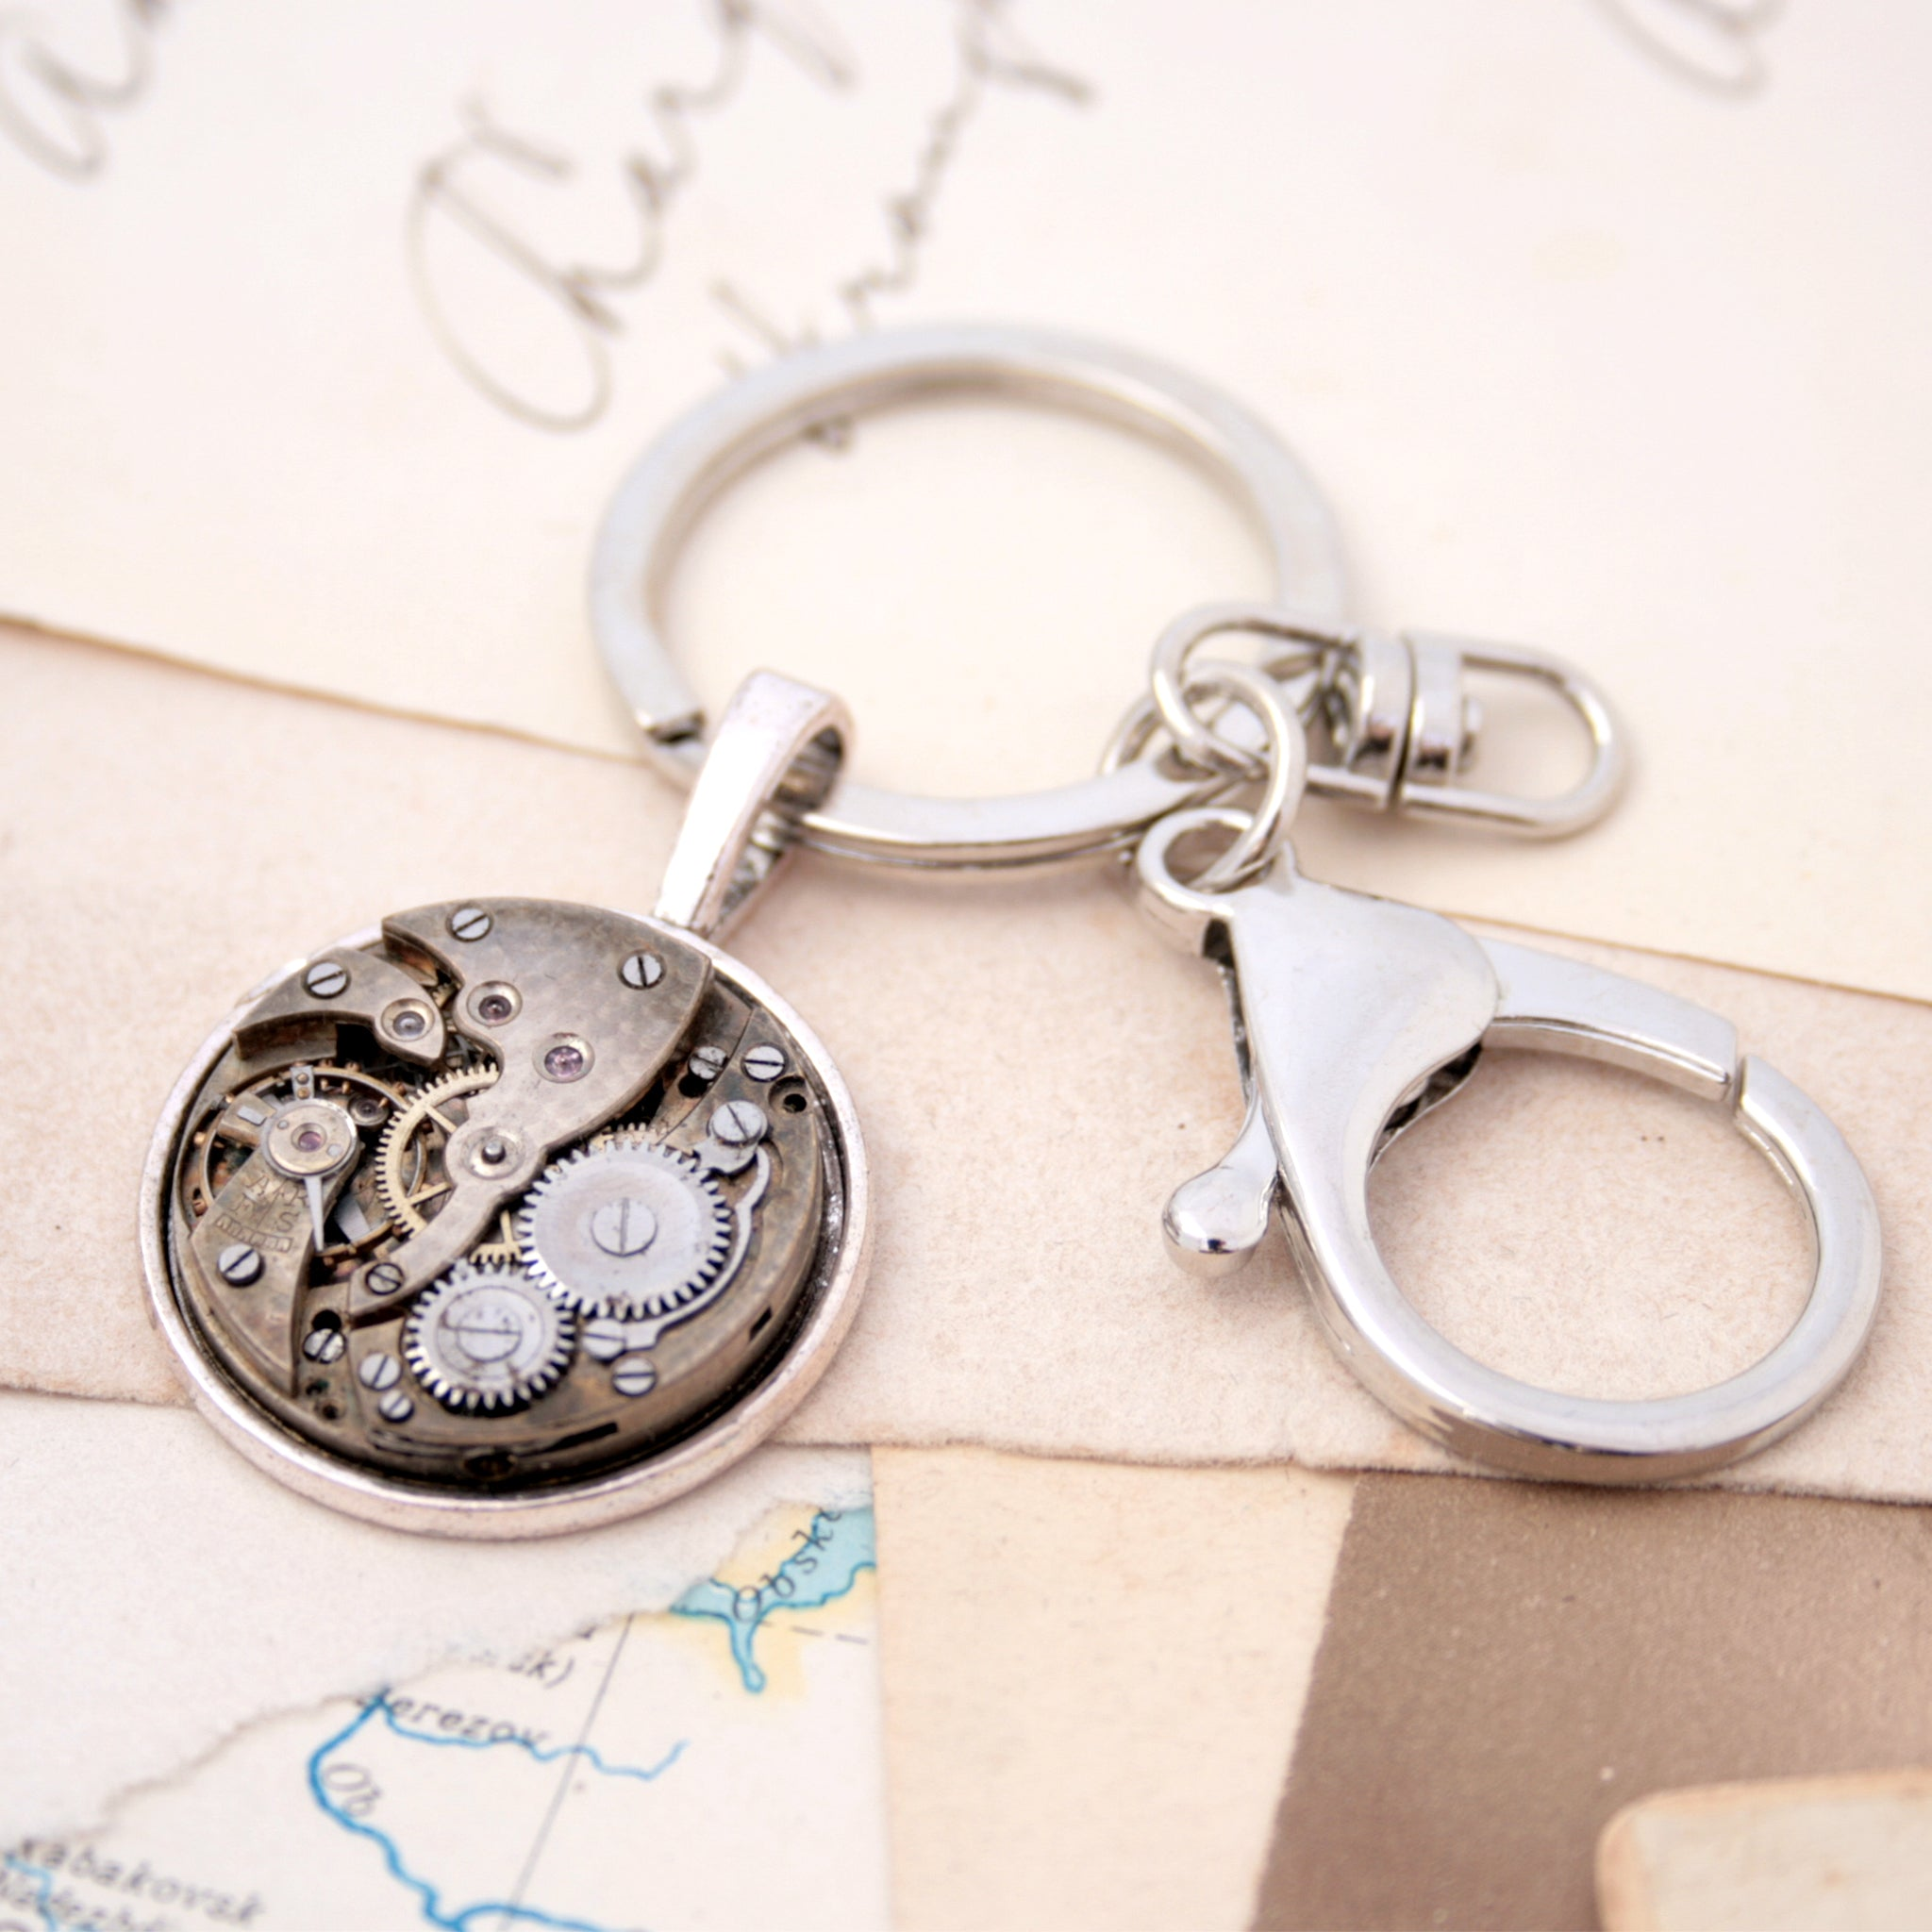 Cool keychain for him in steampunk style with watch movement